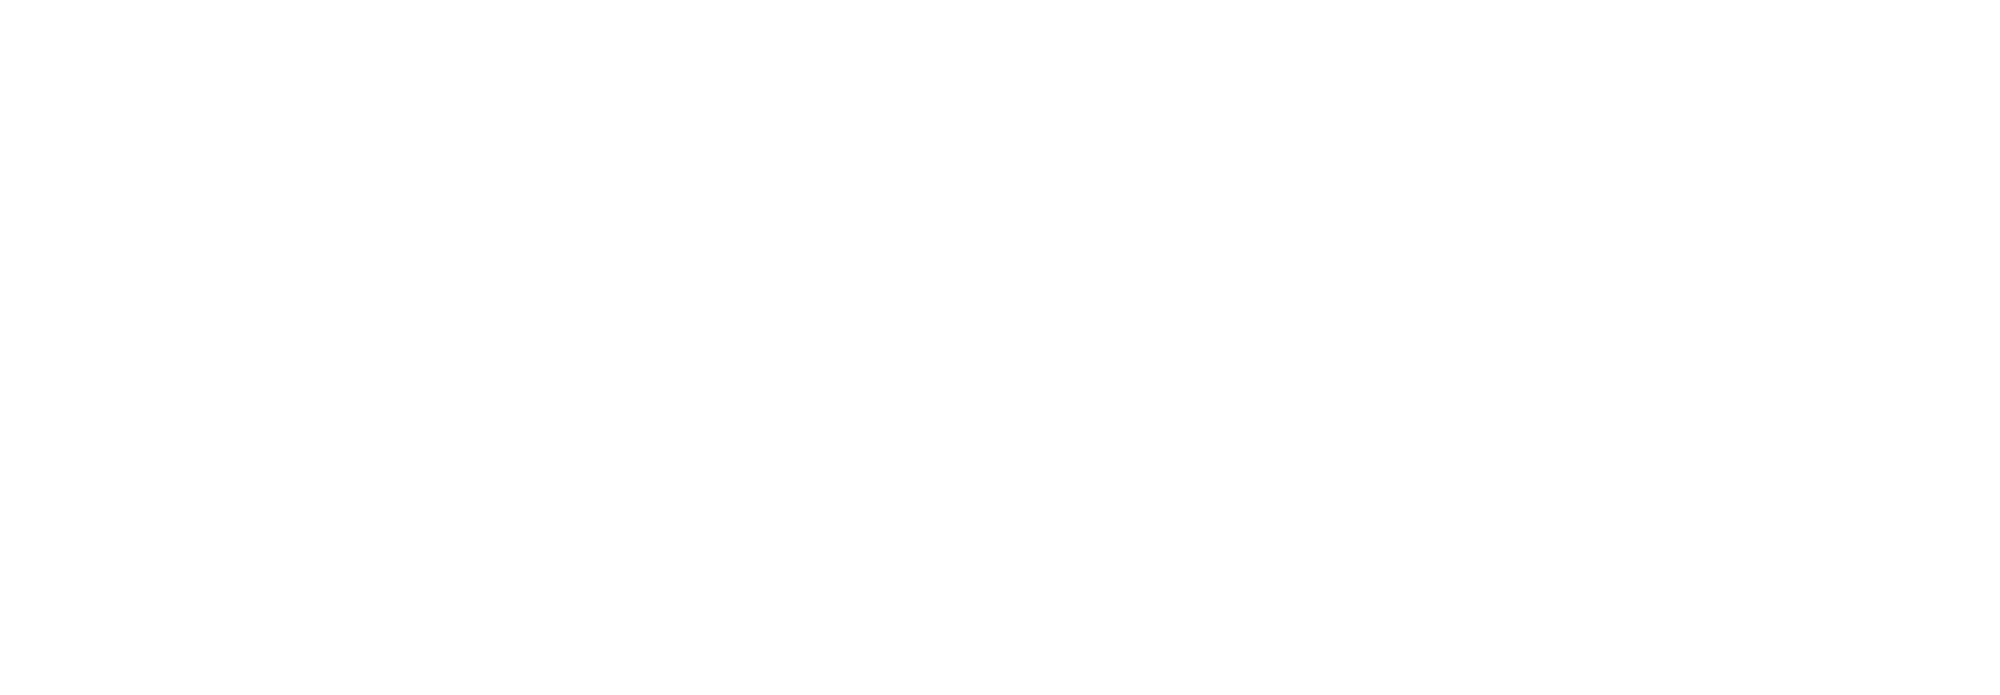 A project of MakeWay